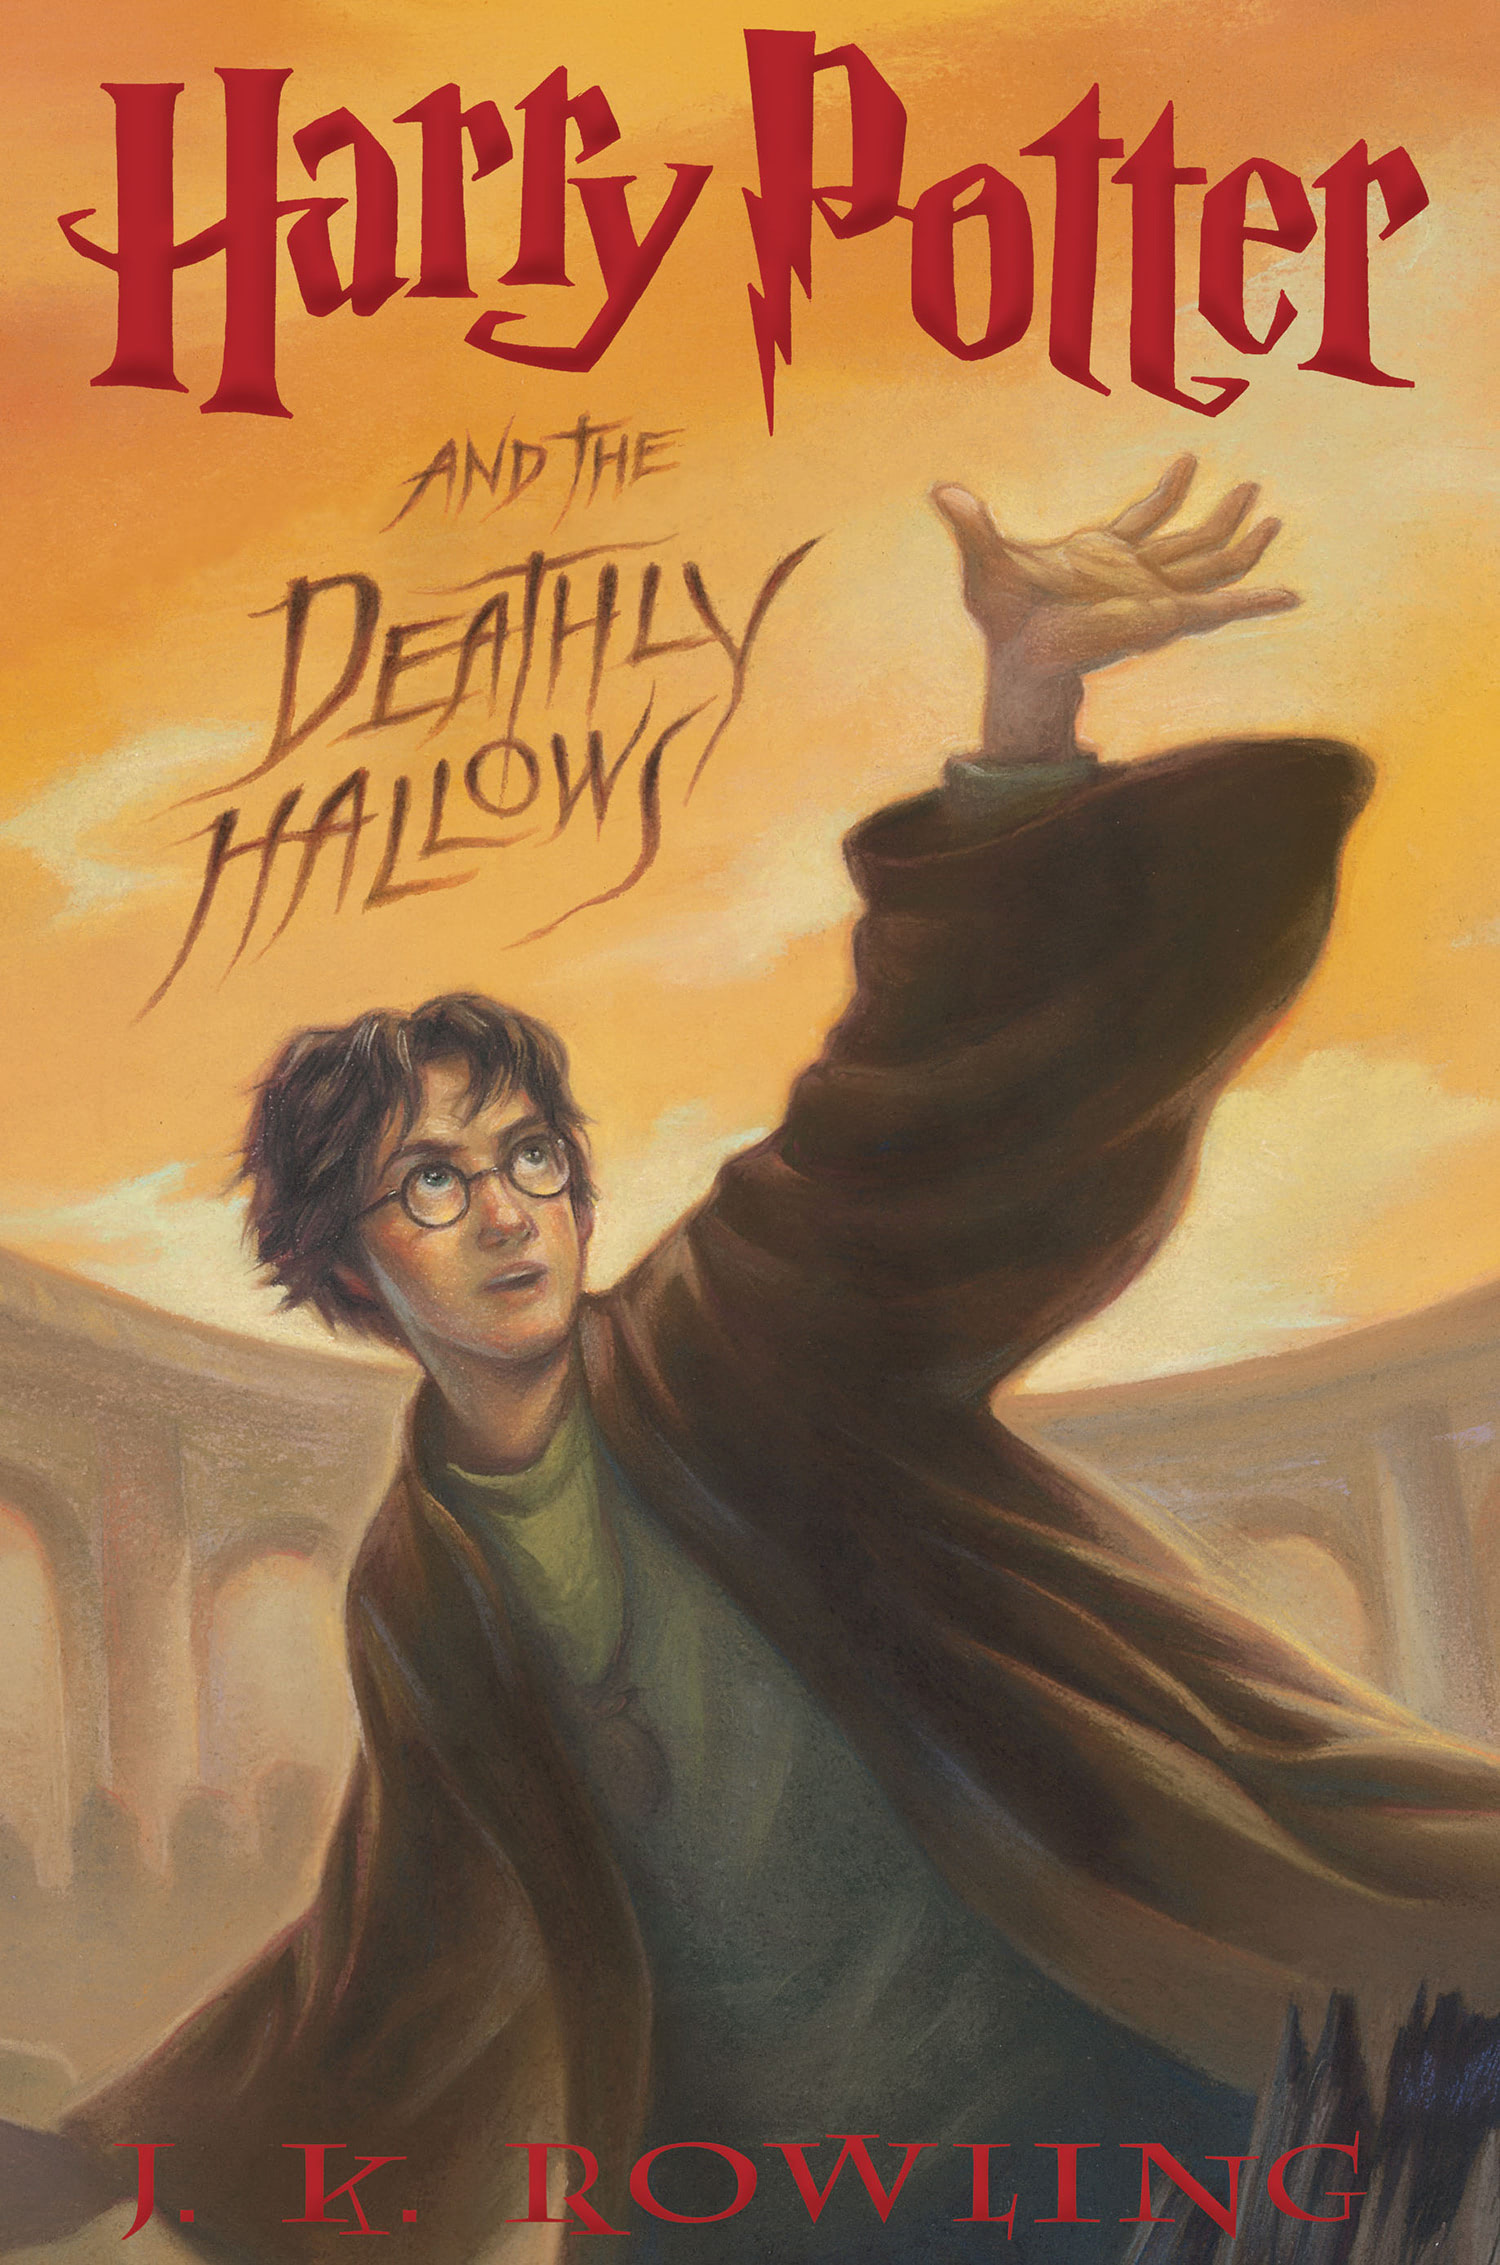 'Deathly Hallows' US children's edition